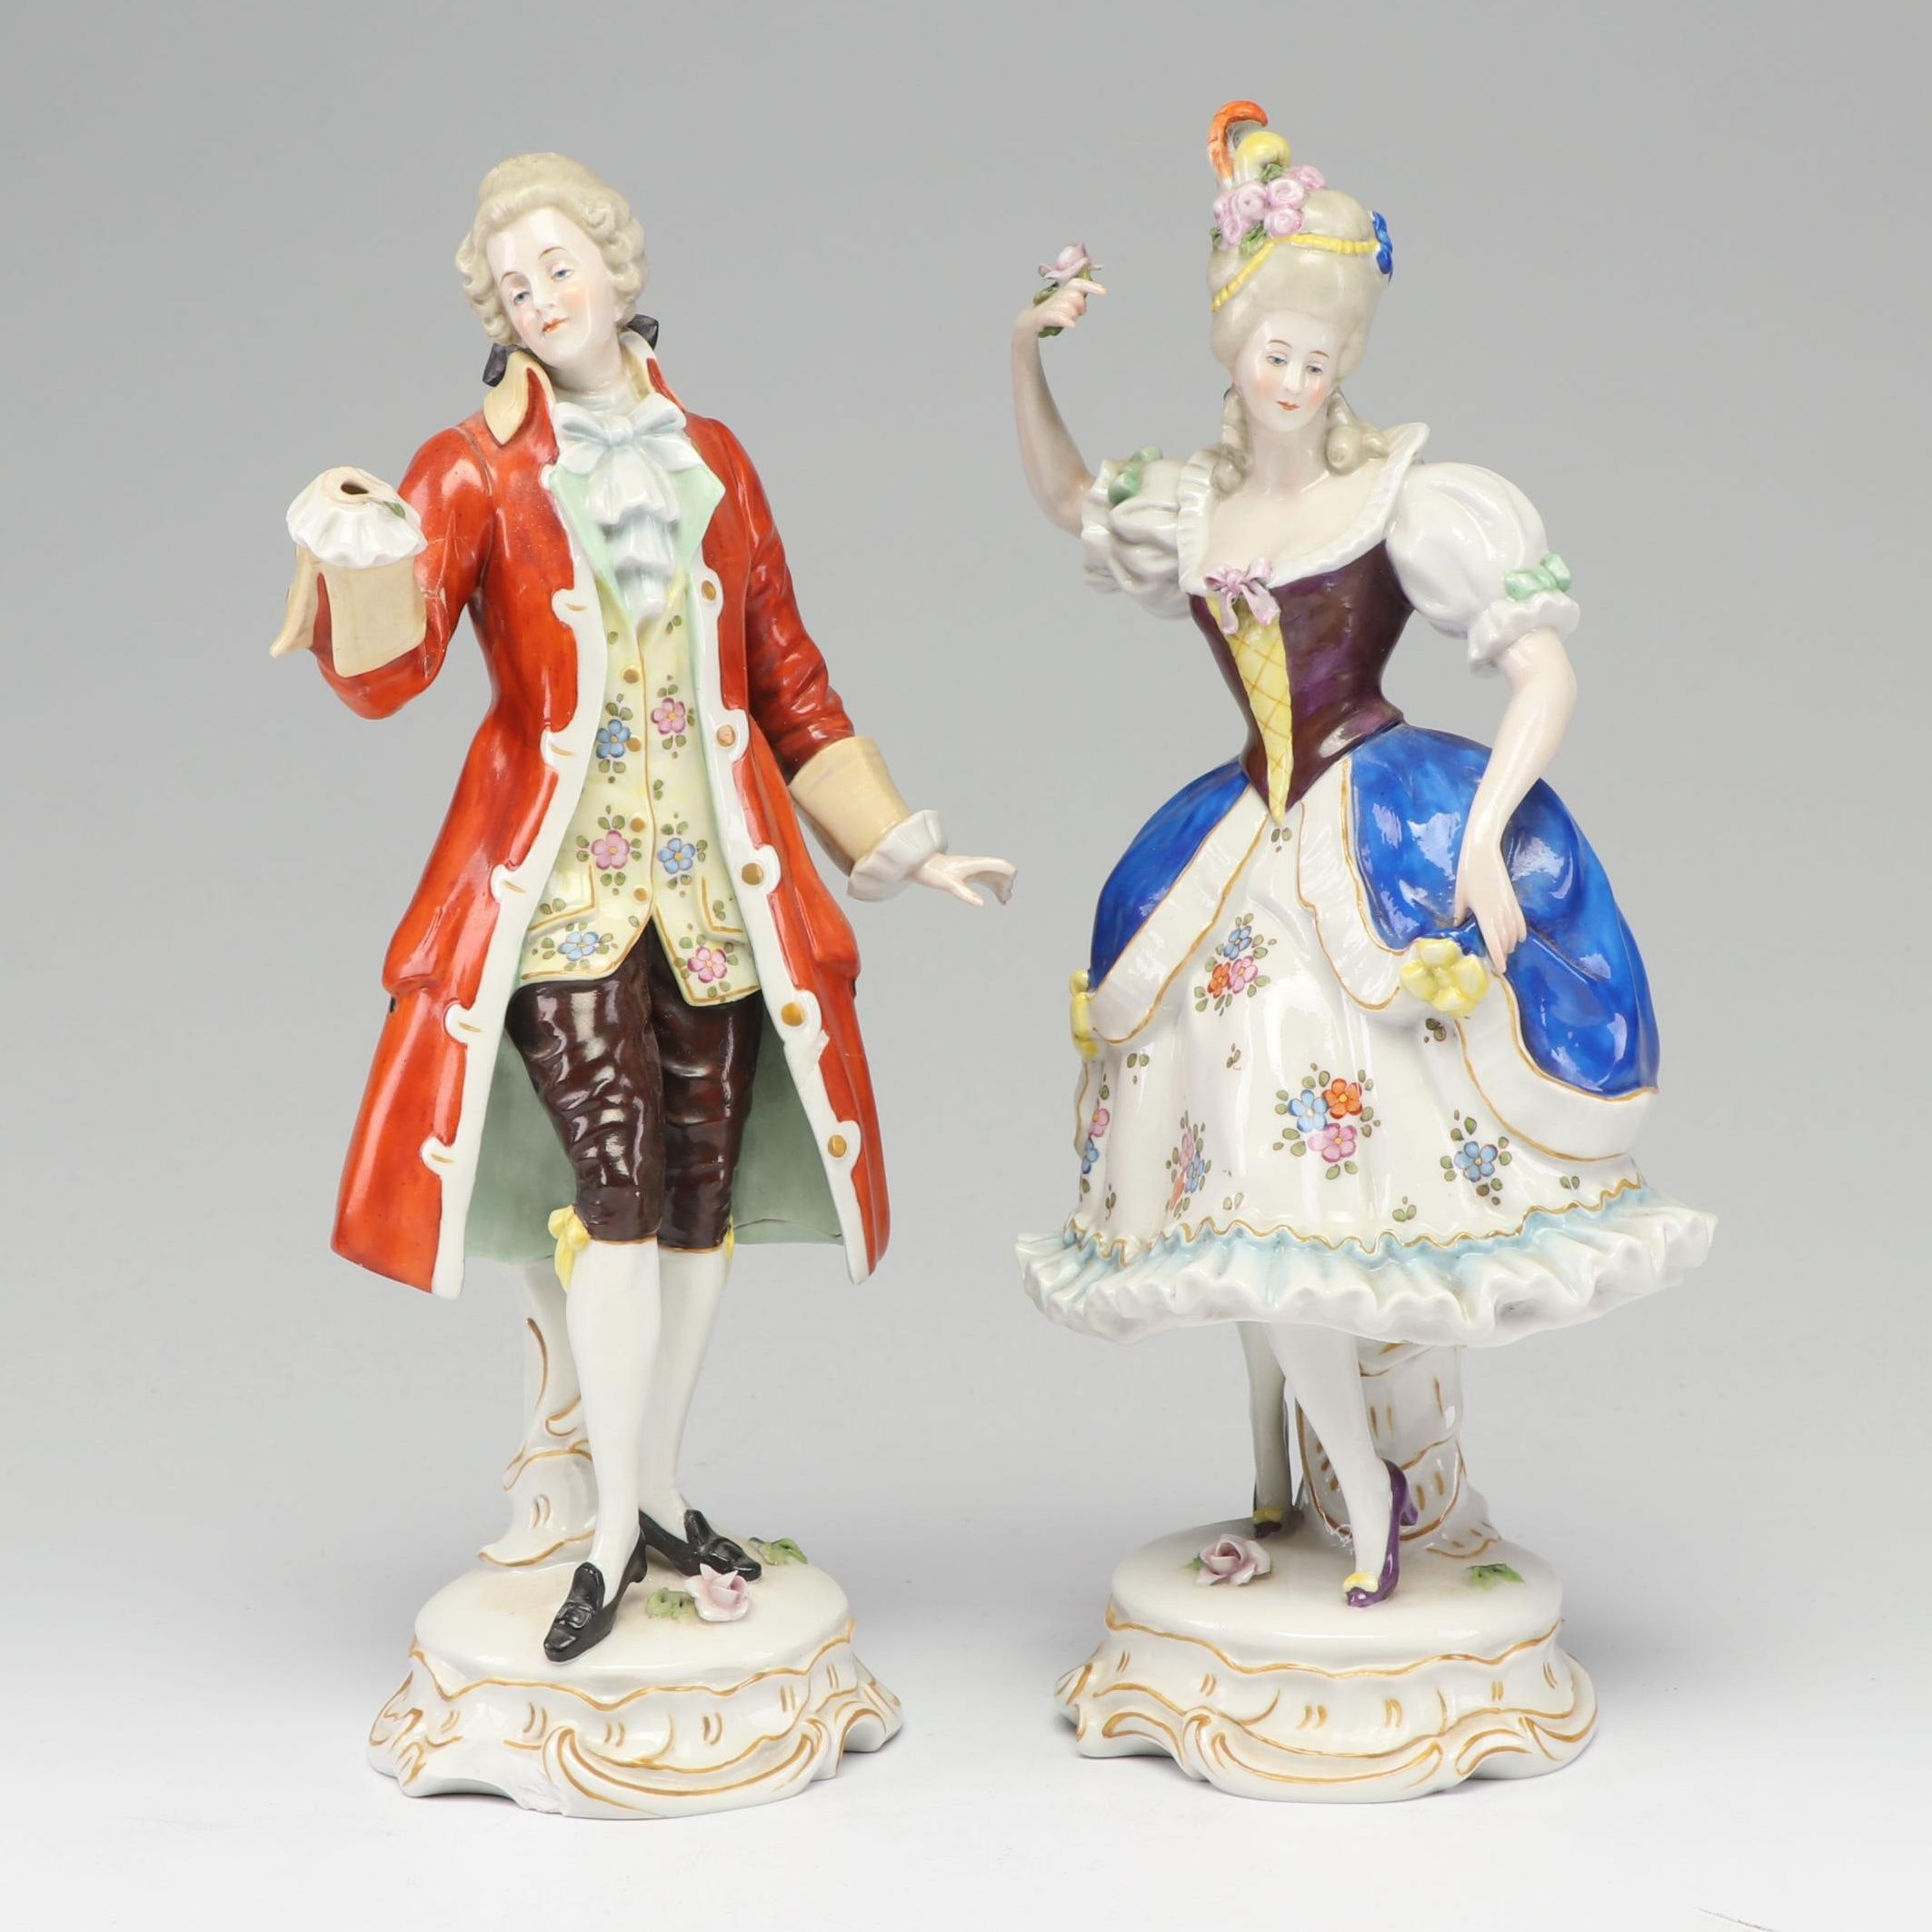 Hand Decorated German Porcelain Figurines, Early to Mid 20th Century